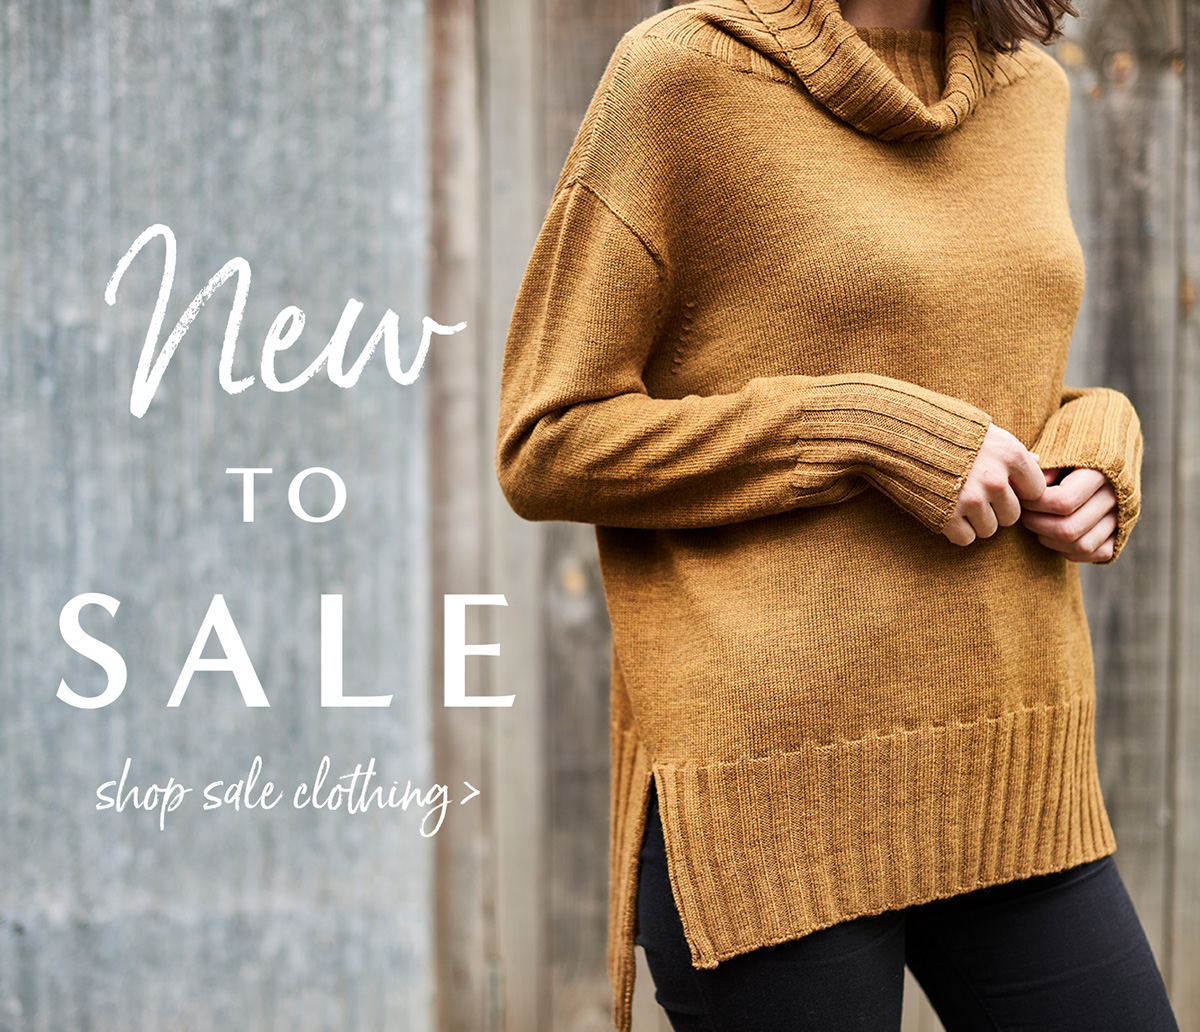 new to sale - shop sale clothing